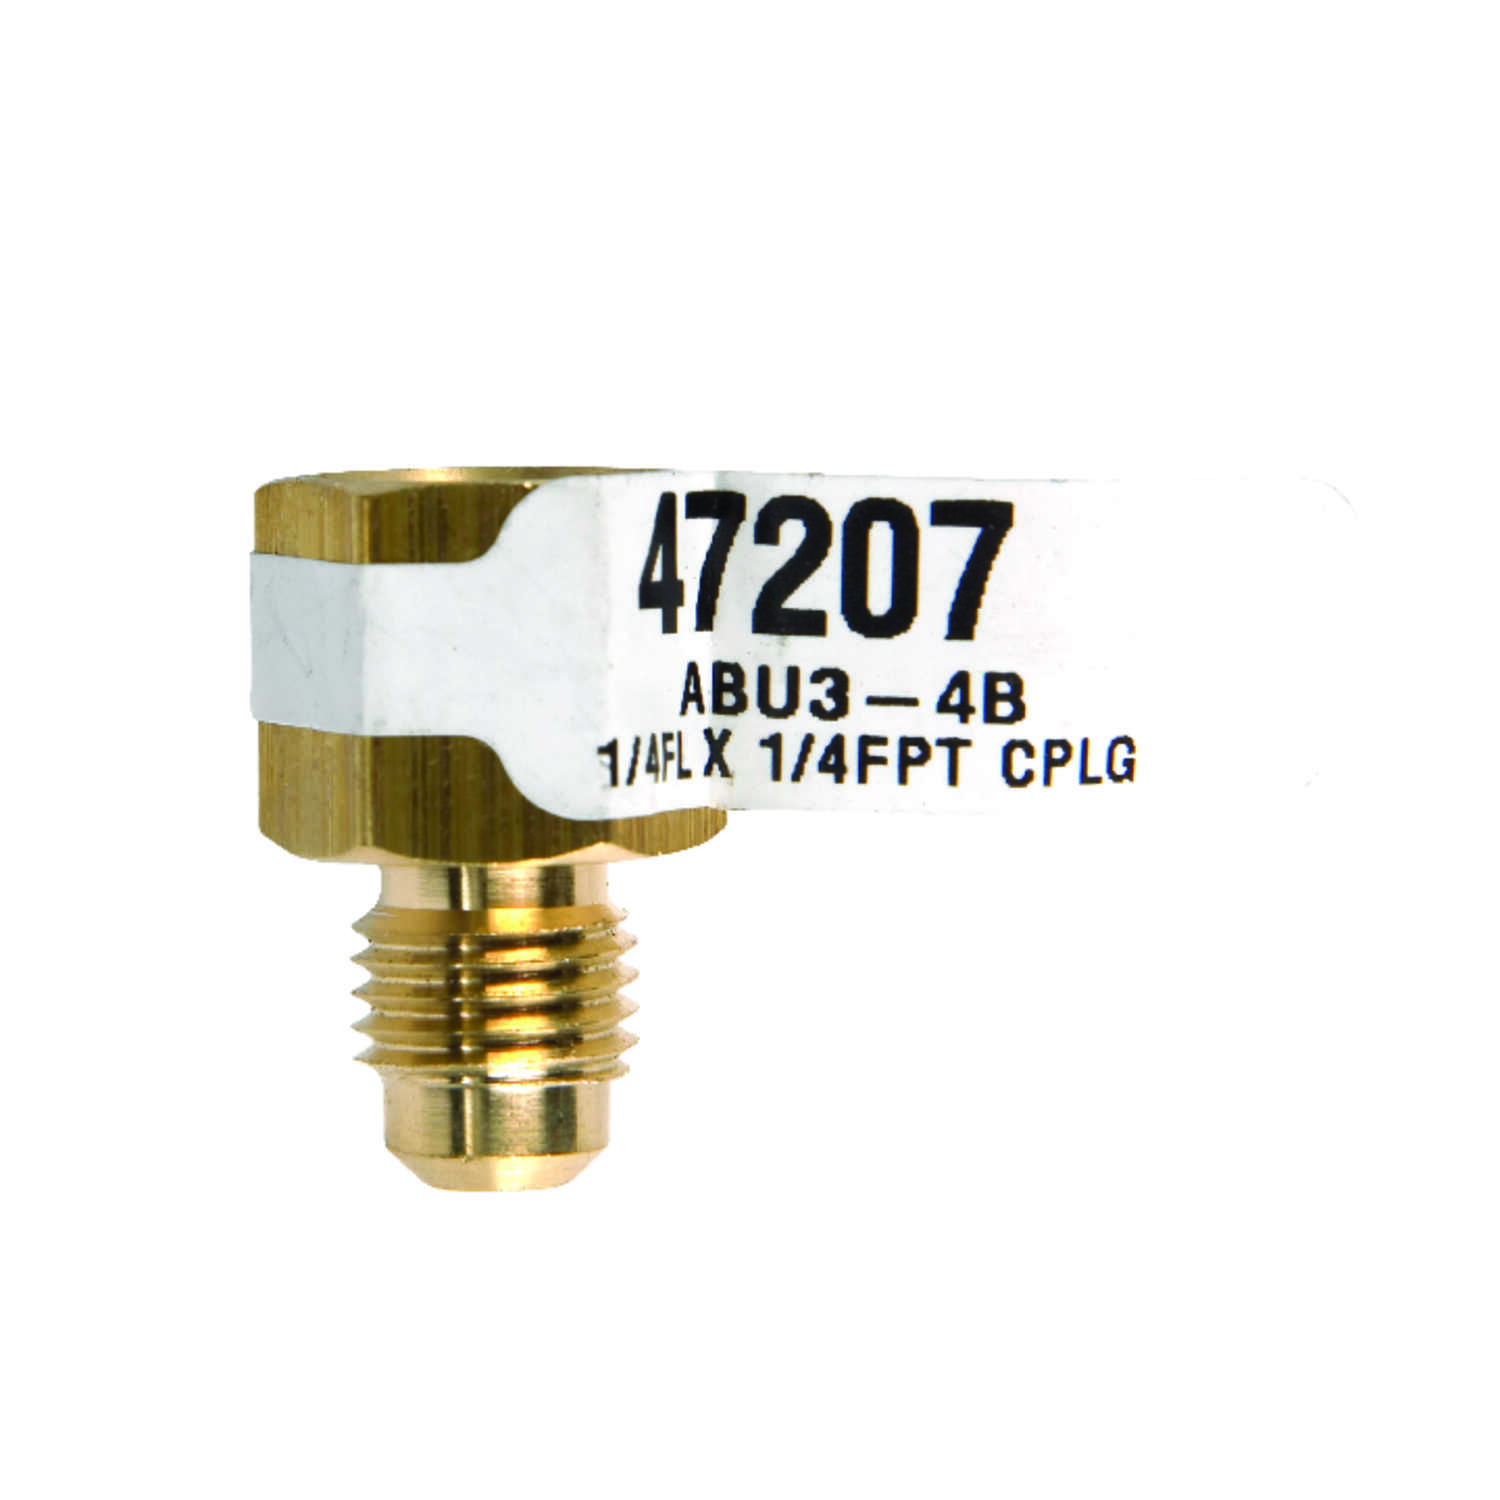 JMF  1/4 in. Flare   x 1/4 in. Dia. Female  Brass  Flare Adapter